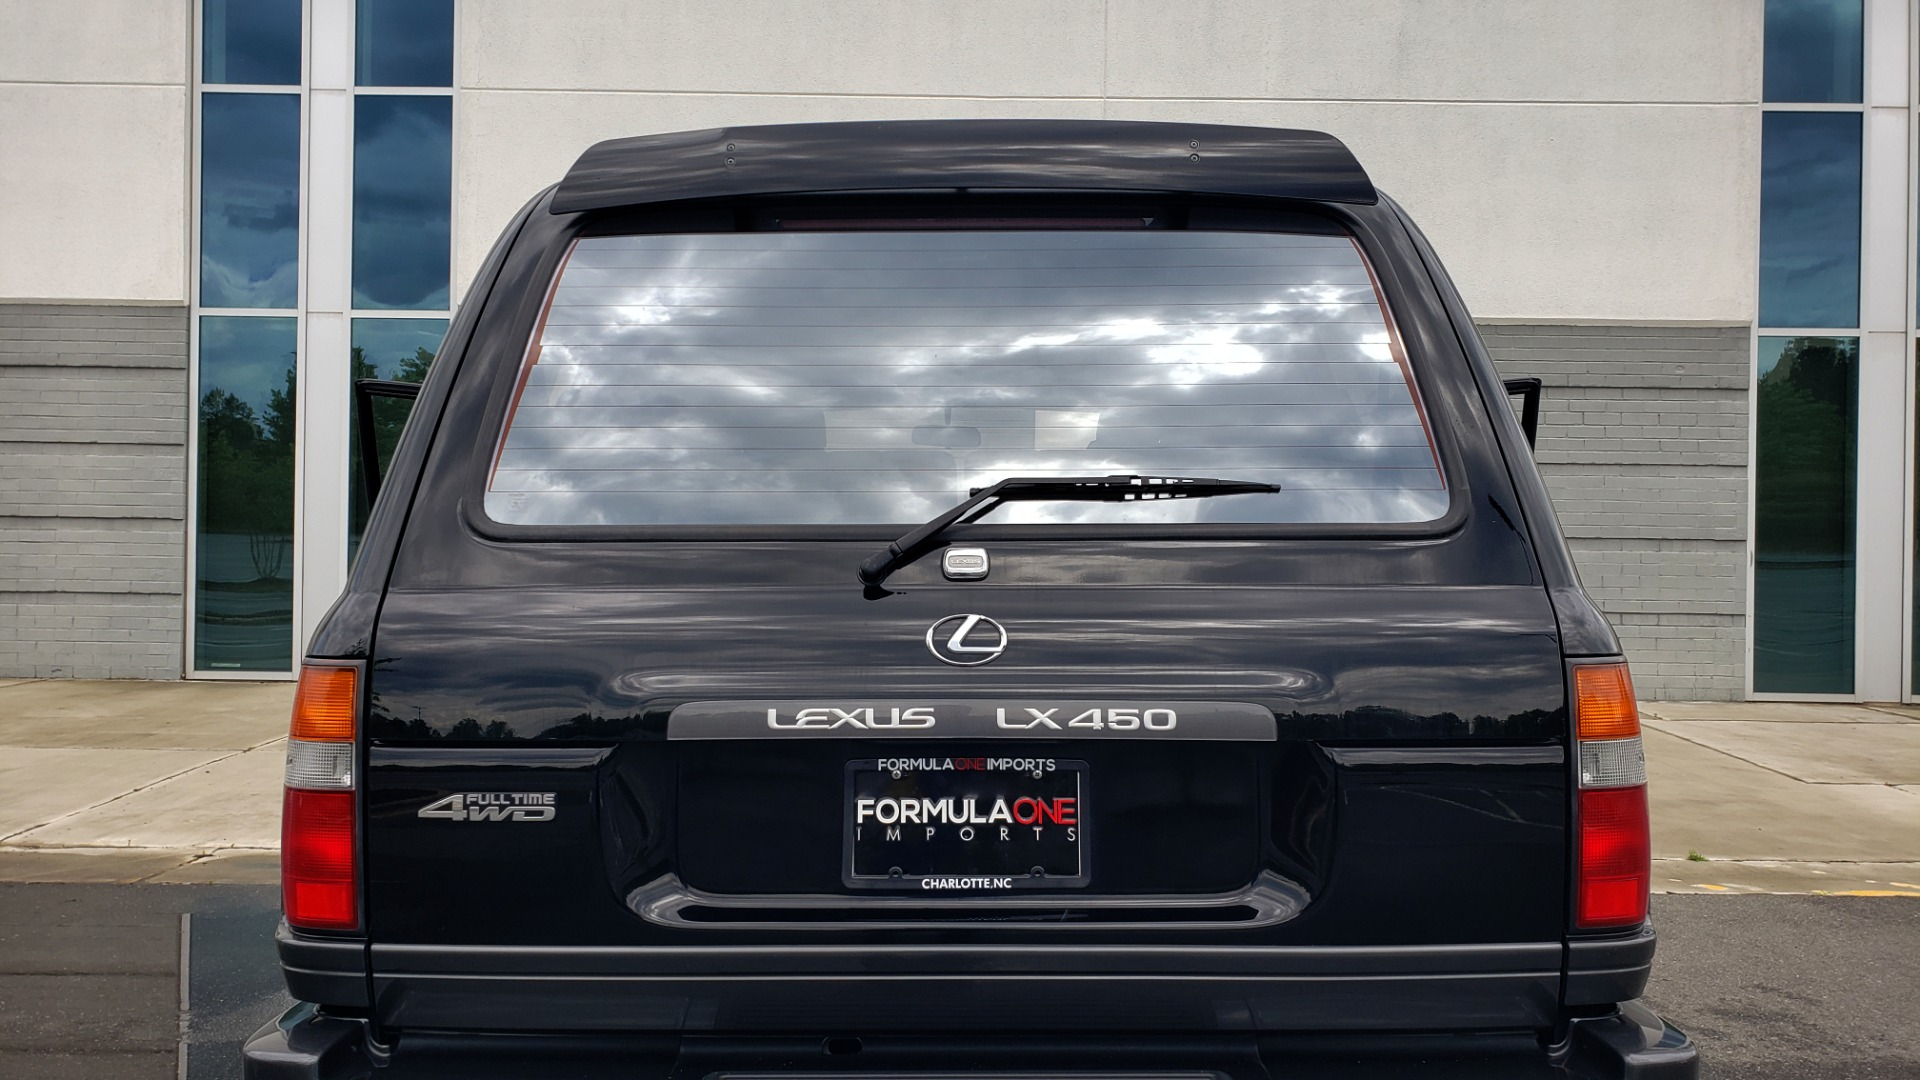 Used 1996 Lexus LX 450 AWD / 4.5L 6-CYL / 4-SPD AUTO / RUNNING BOARDS / NEW BFG TIRES for sale $49,995 at Formula Imports in Charlotte NC 28227 56